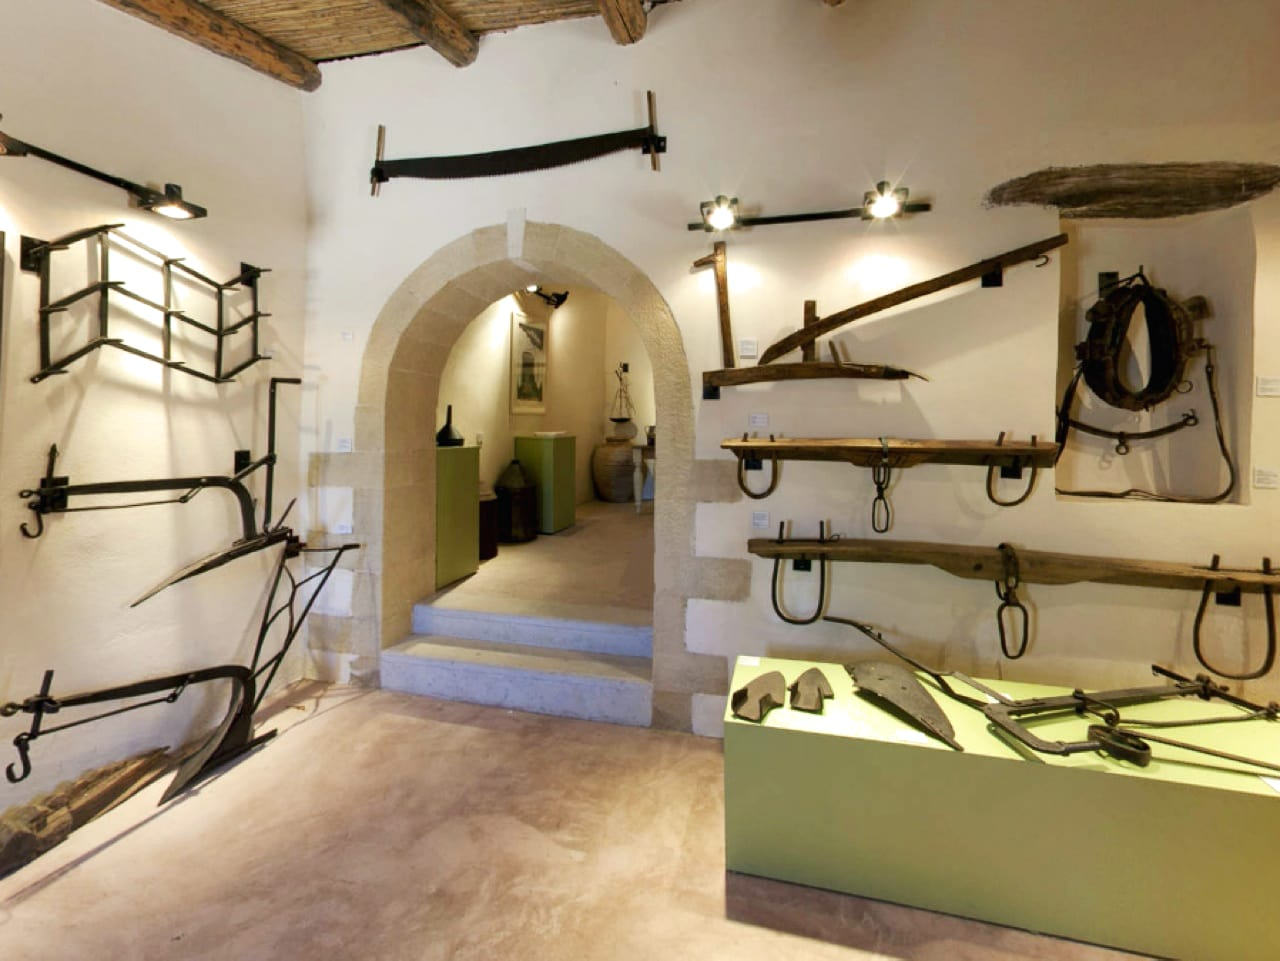 The Olive Tree Museum of Vouves, Monumental Olive Tree of Vouves, Pano Vouves olive museum, West Crete activities, best activities chania crete